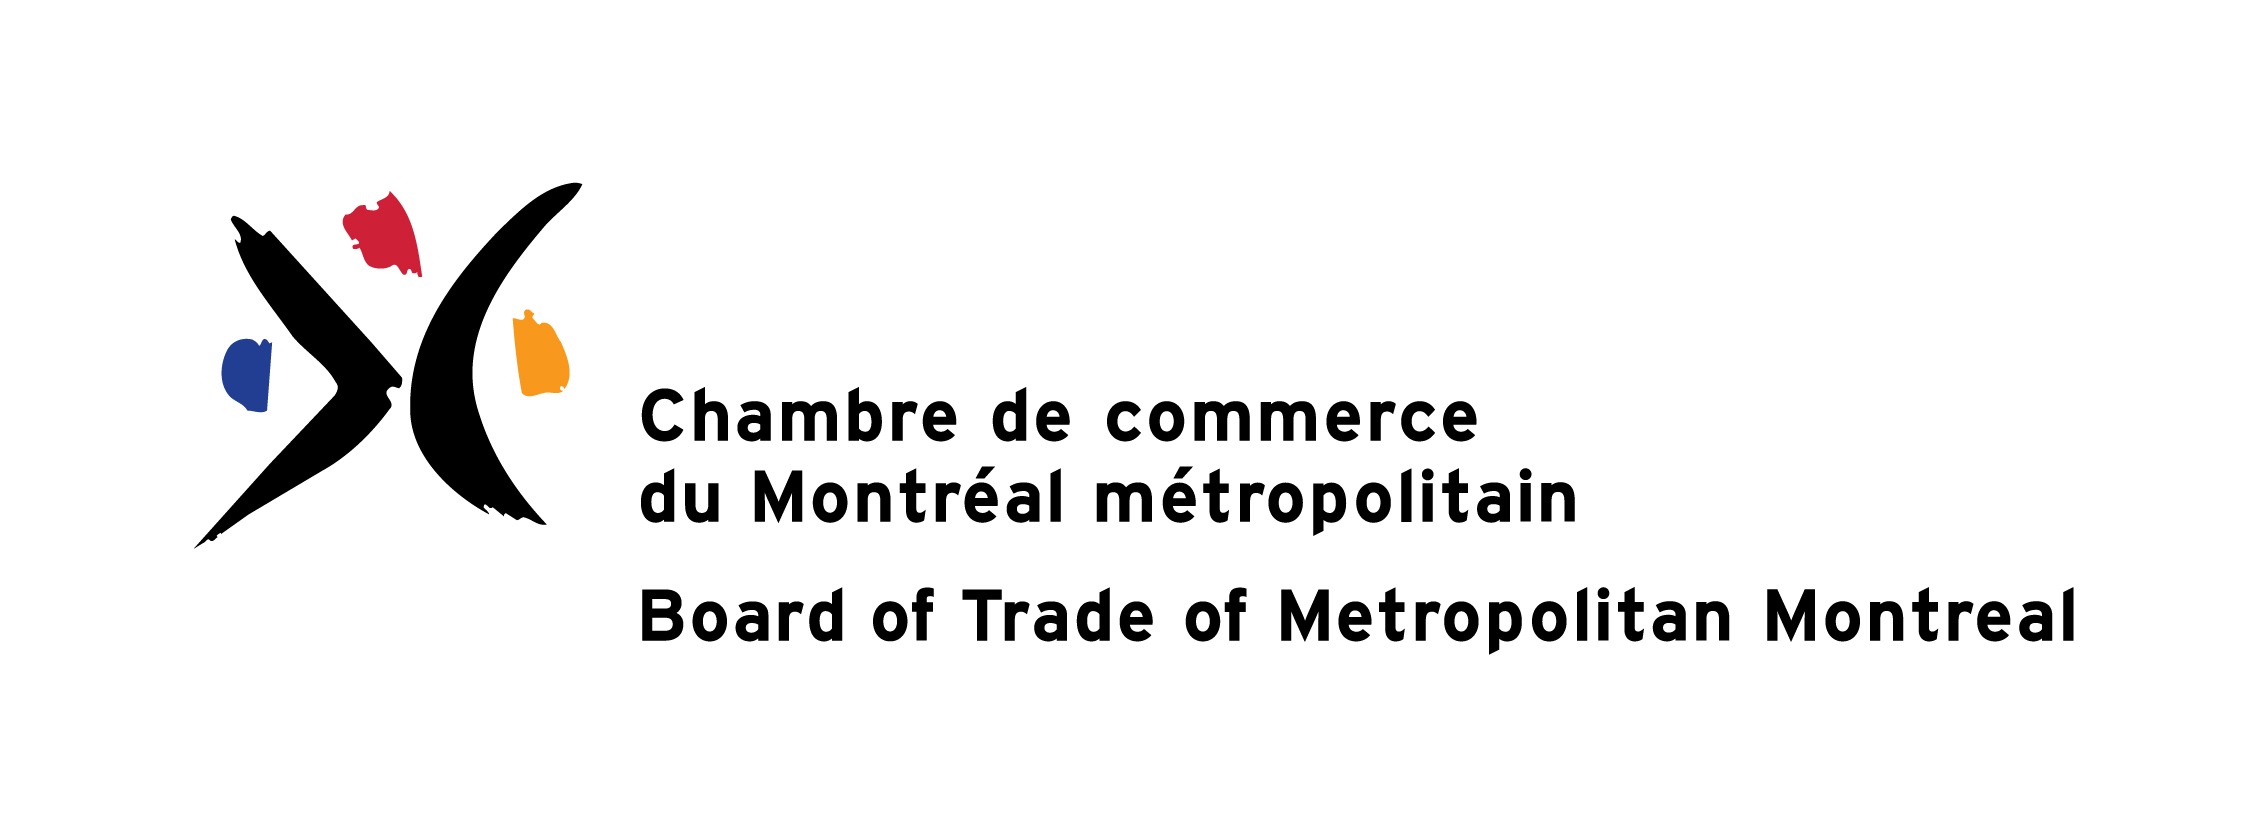 Jacques daoust devant la chambre de commerce du montr al for Chambre de commerce du montreal metropolitain